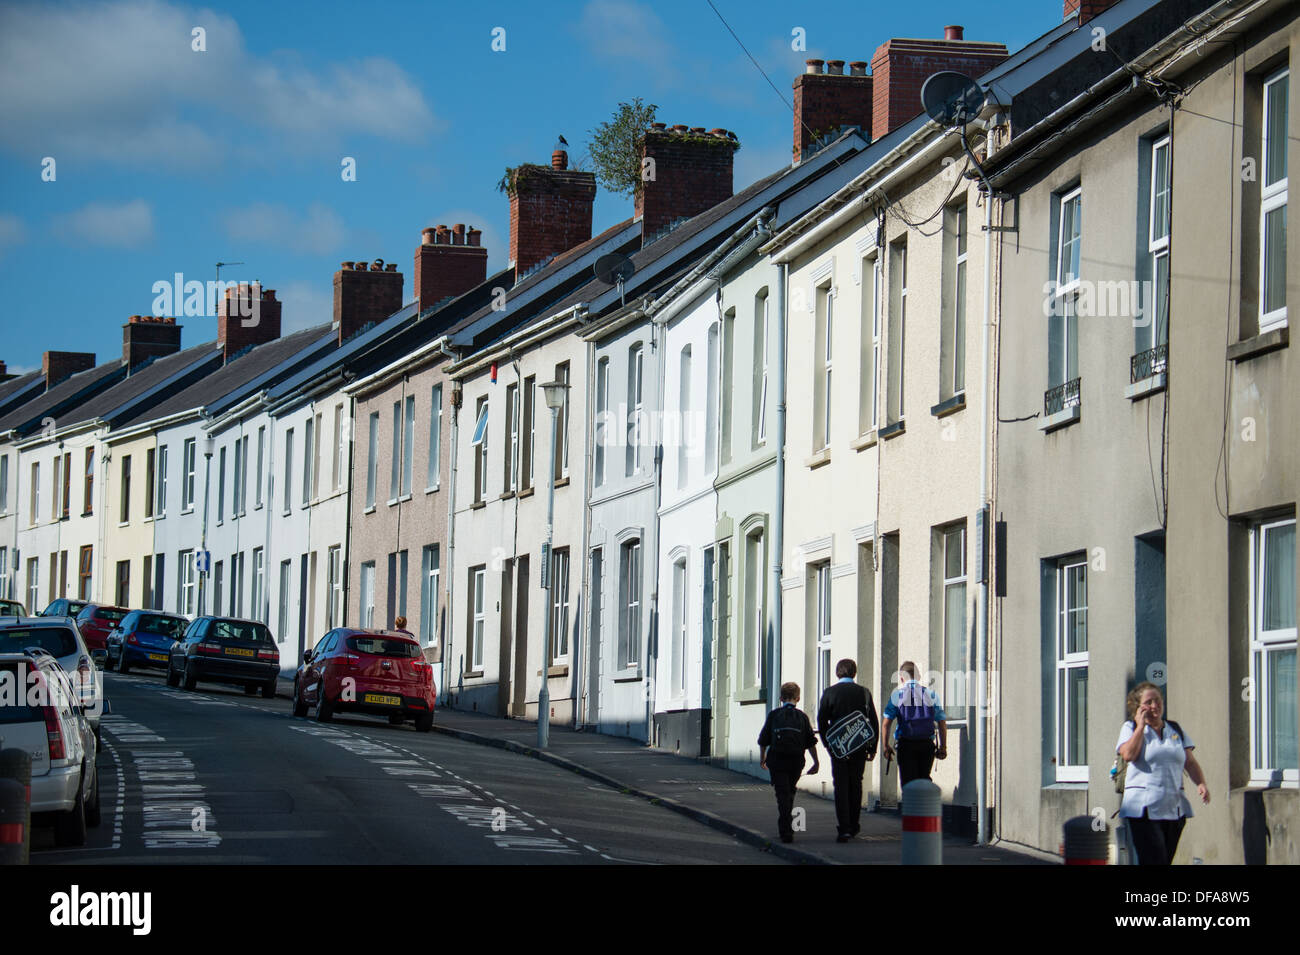 A street  row of 'two up two down'  terraced houses in Carmarthen Wales UK - Stock Image